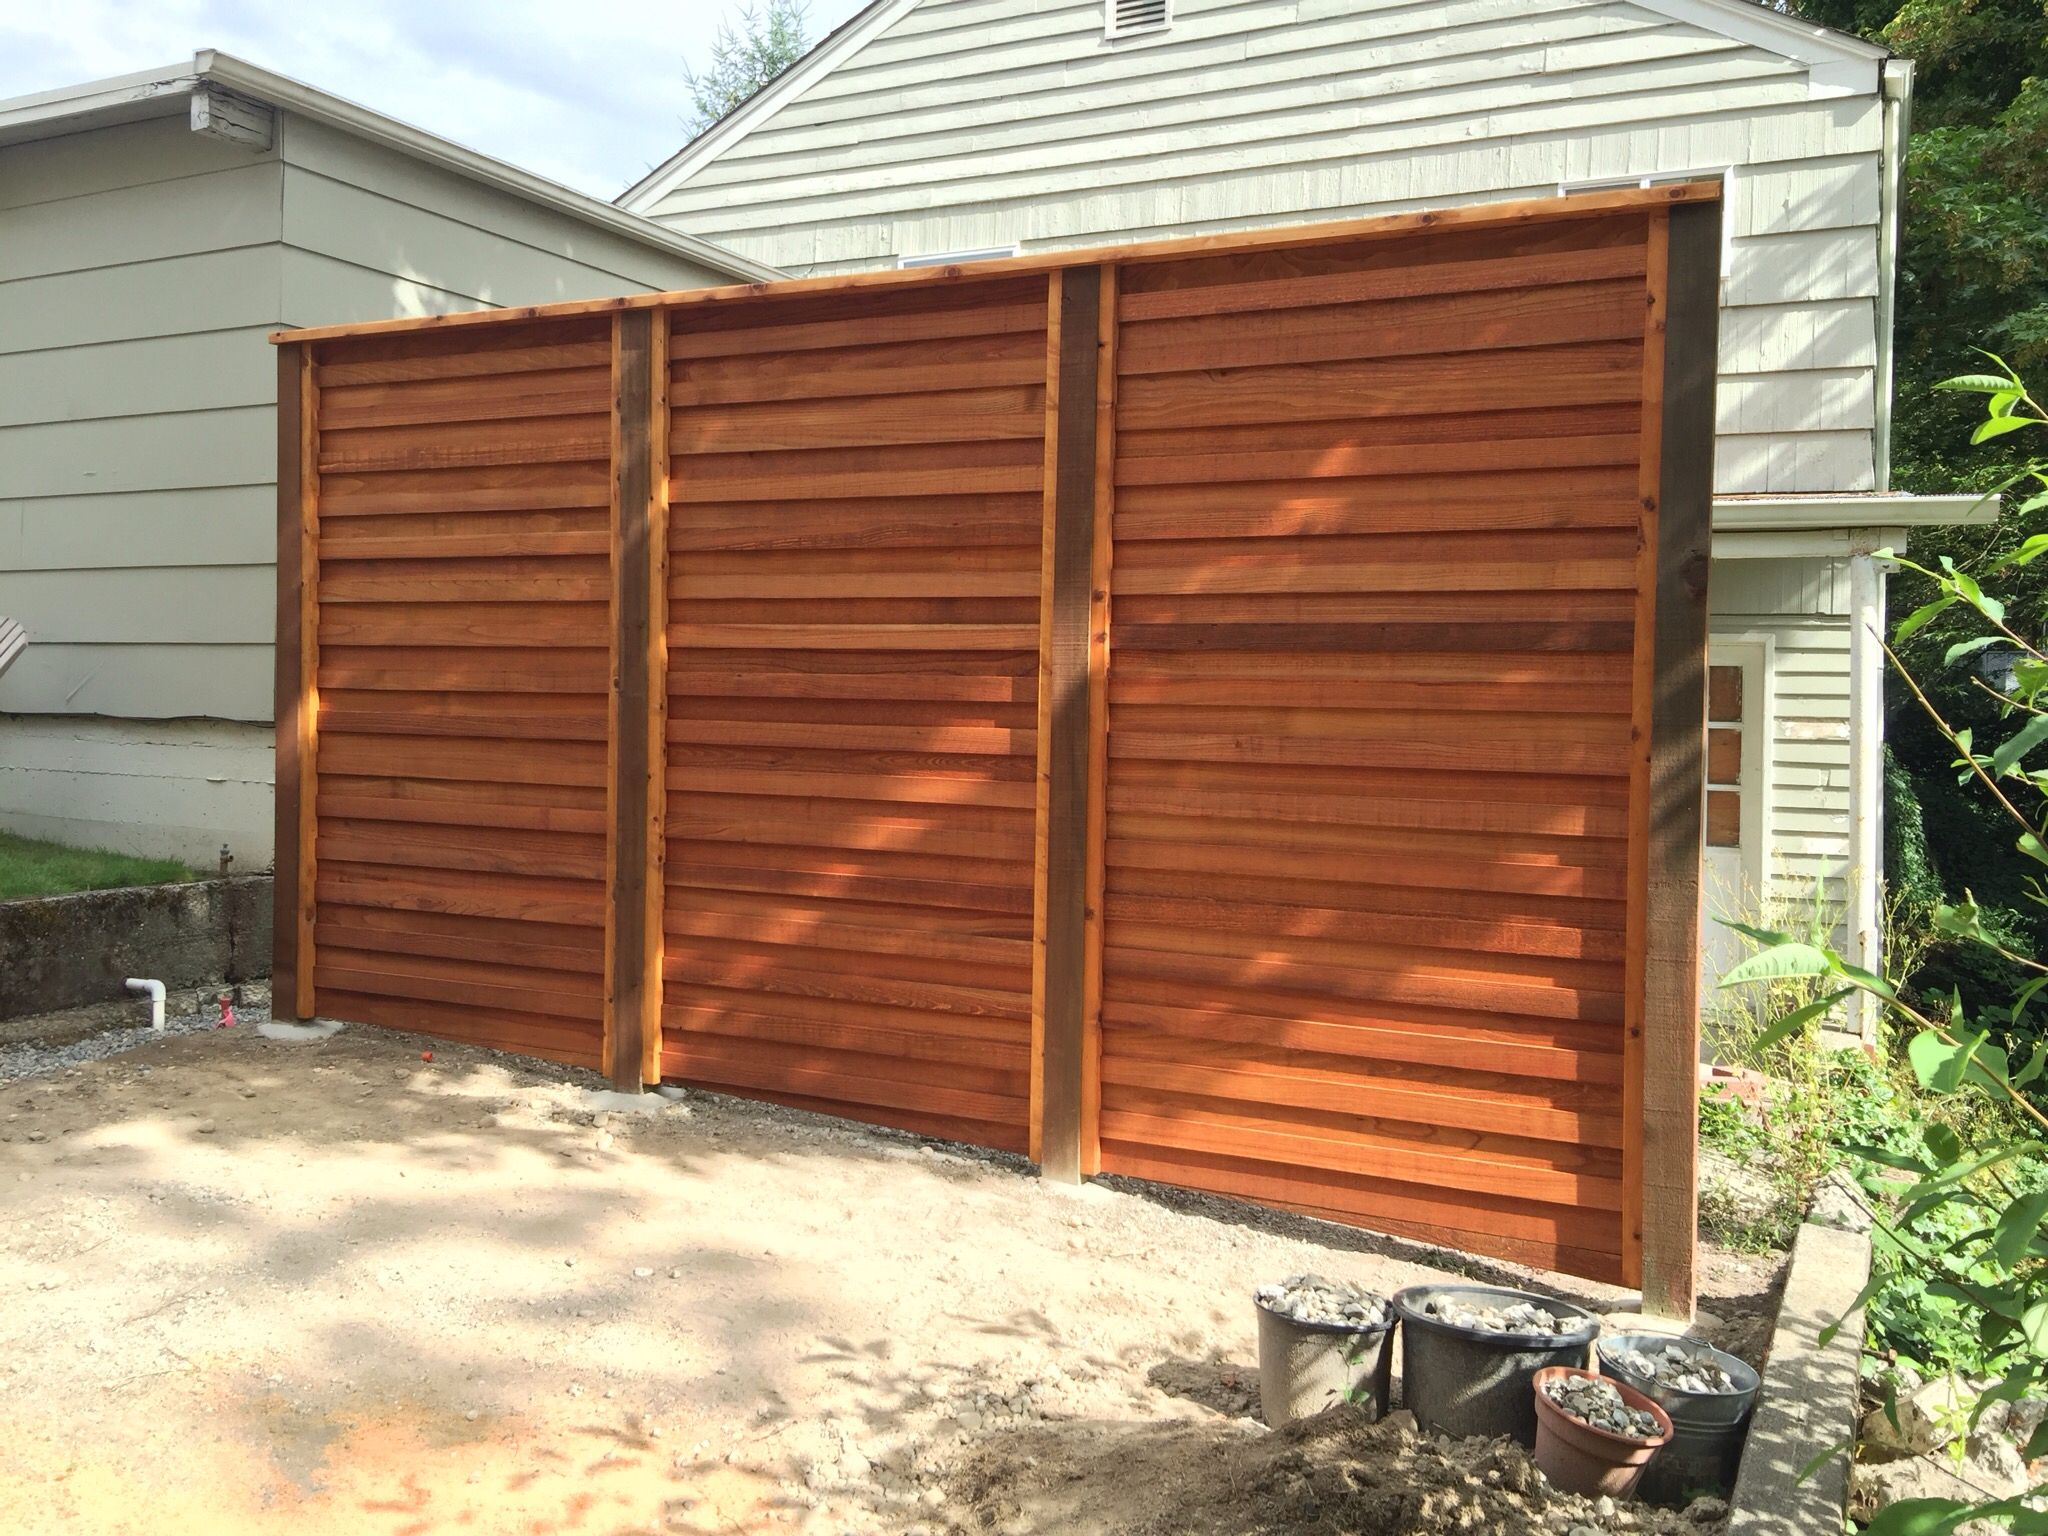 Garden trees for screening  Horizontal Privacy Screen  Privacy Screen  Pinterest